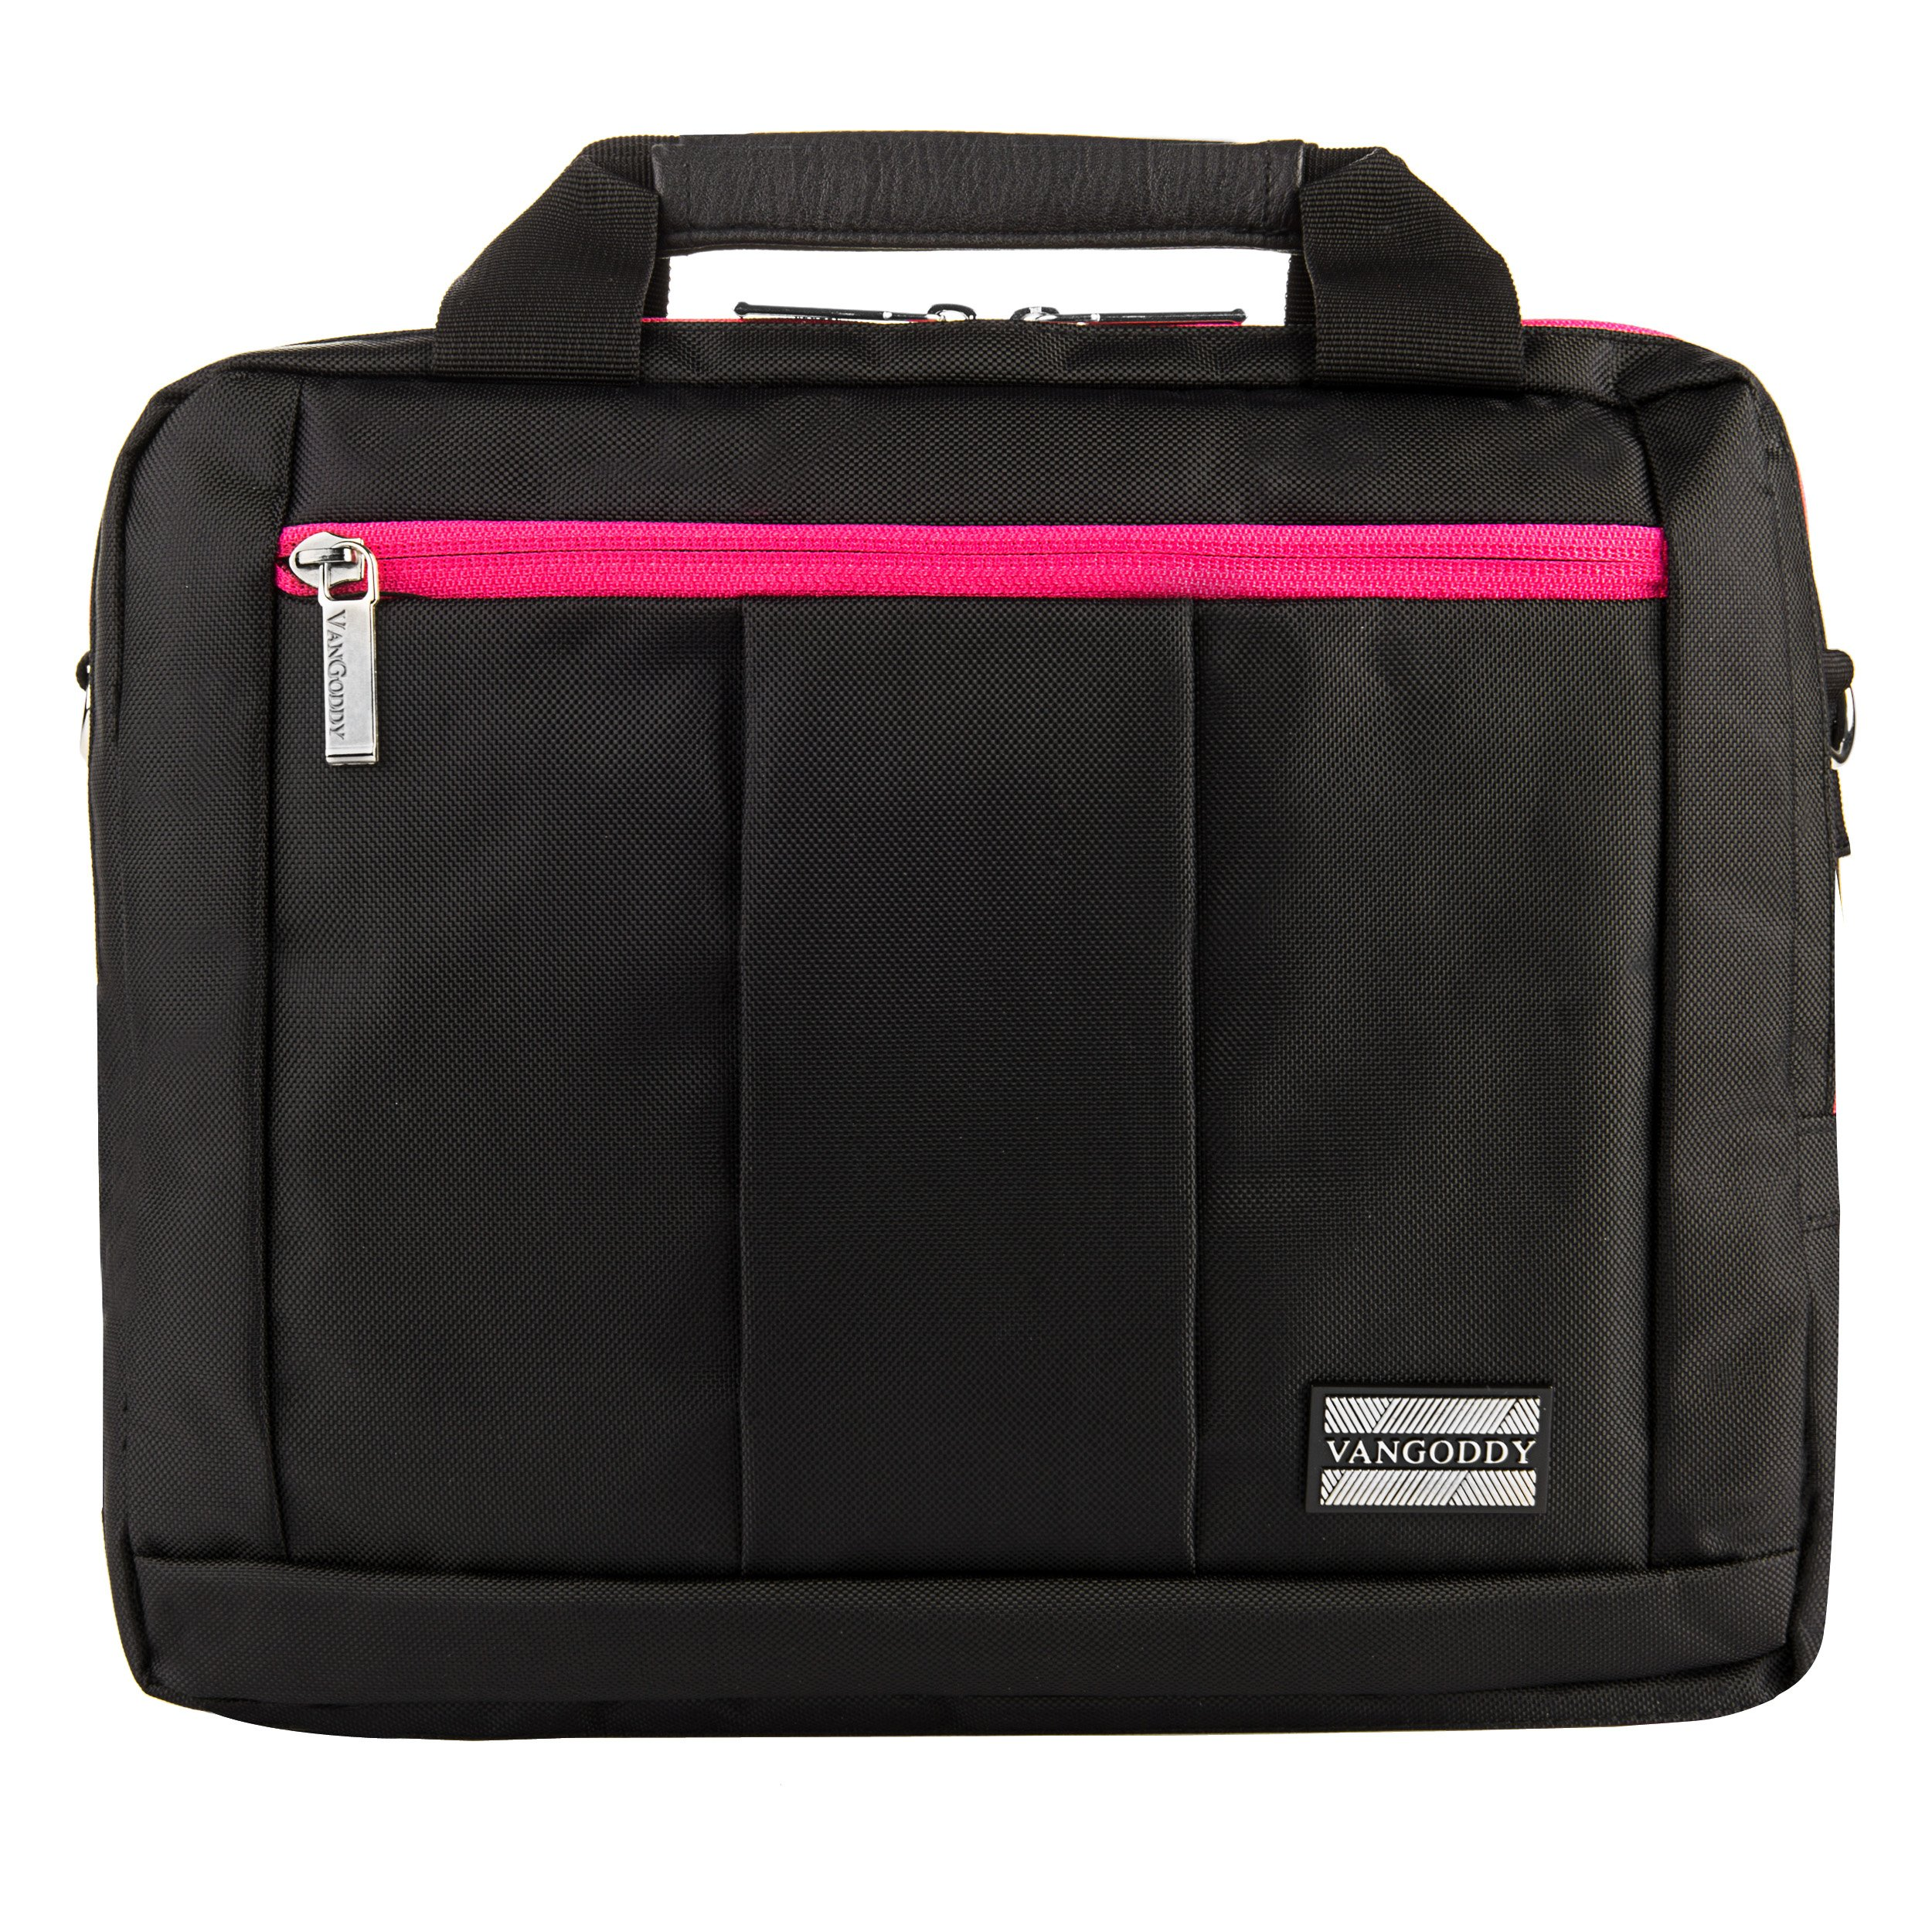 Executive Travel Carrying Bag, Messenger Bag & Backpack For Samsung Galaxy Tab PRO / Galaxy Note PRO 12.2'' Tablet + Pink Bluetooth Suction Speaker by Vangoddy (Image #8)